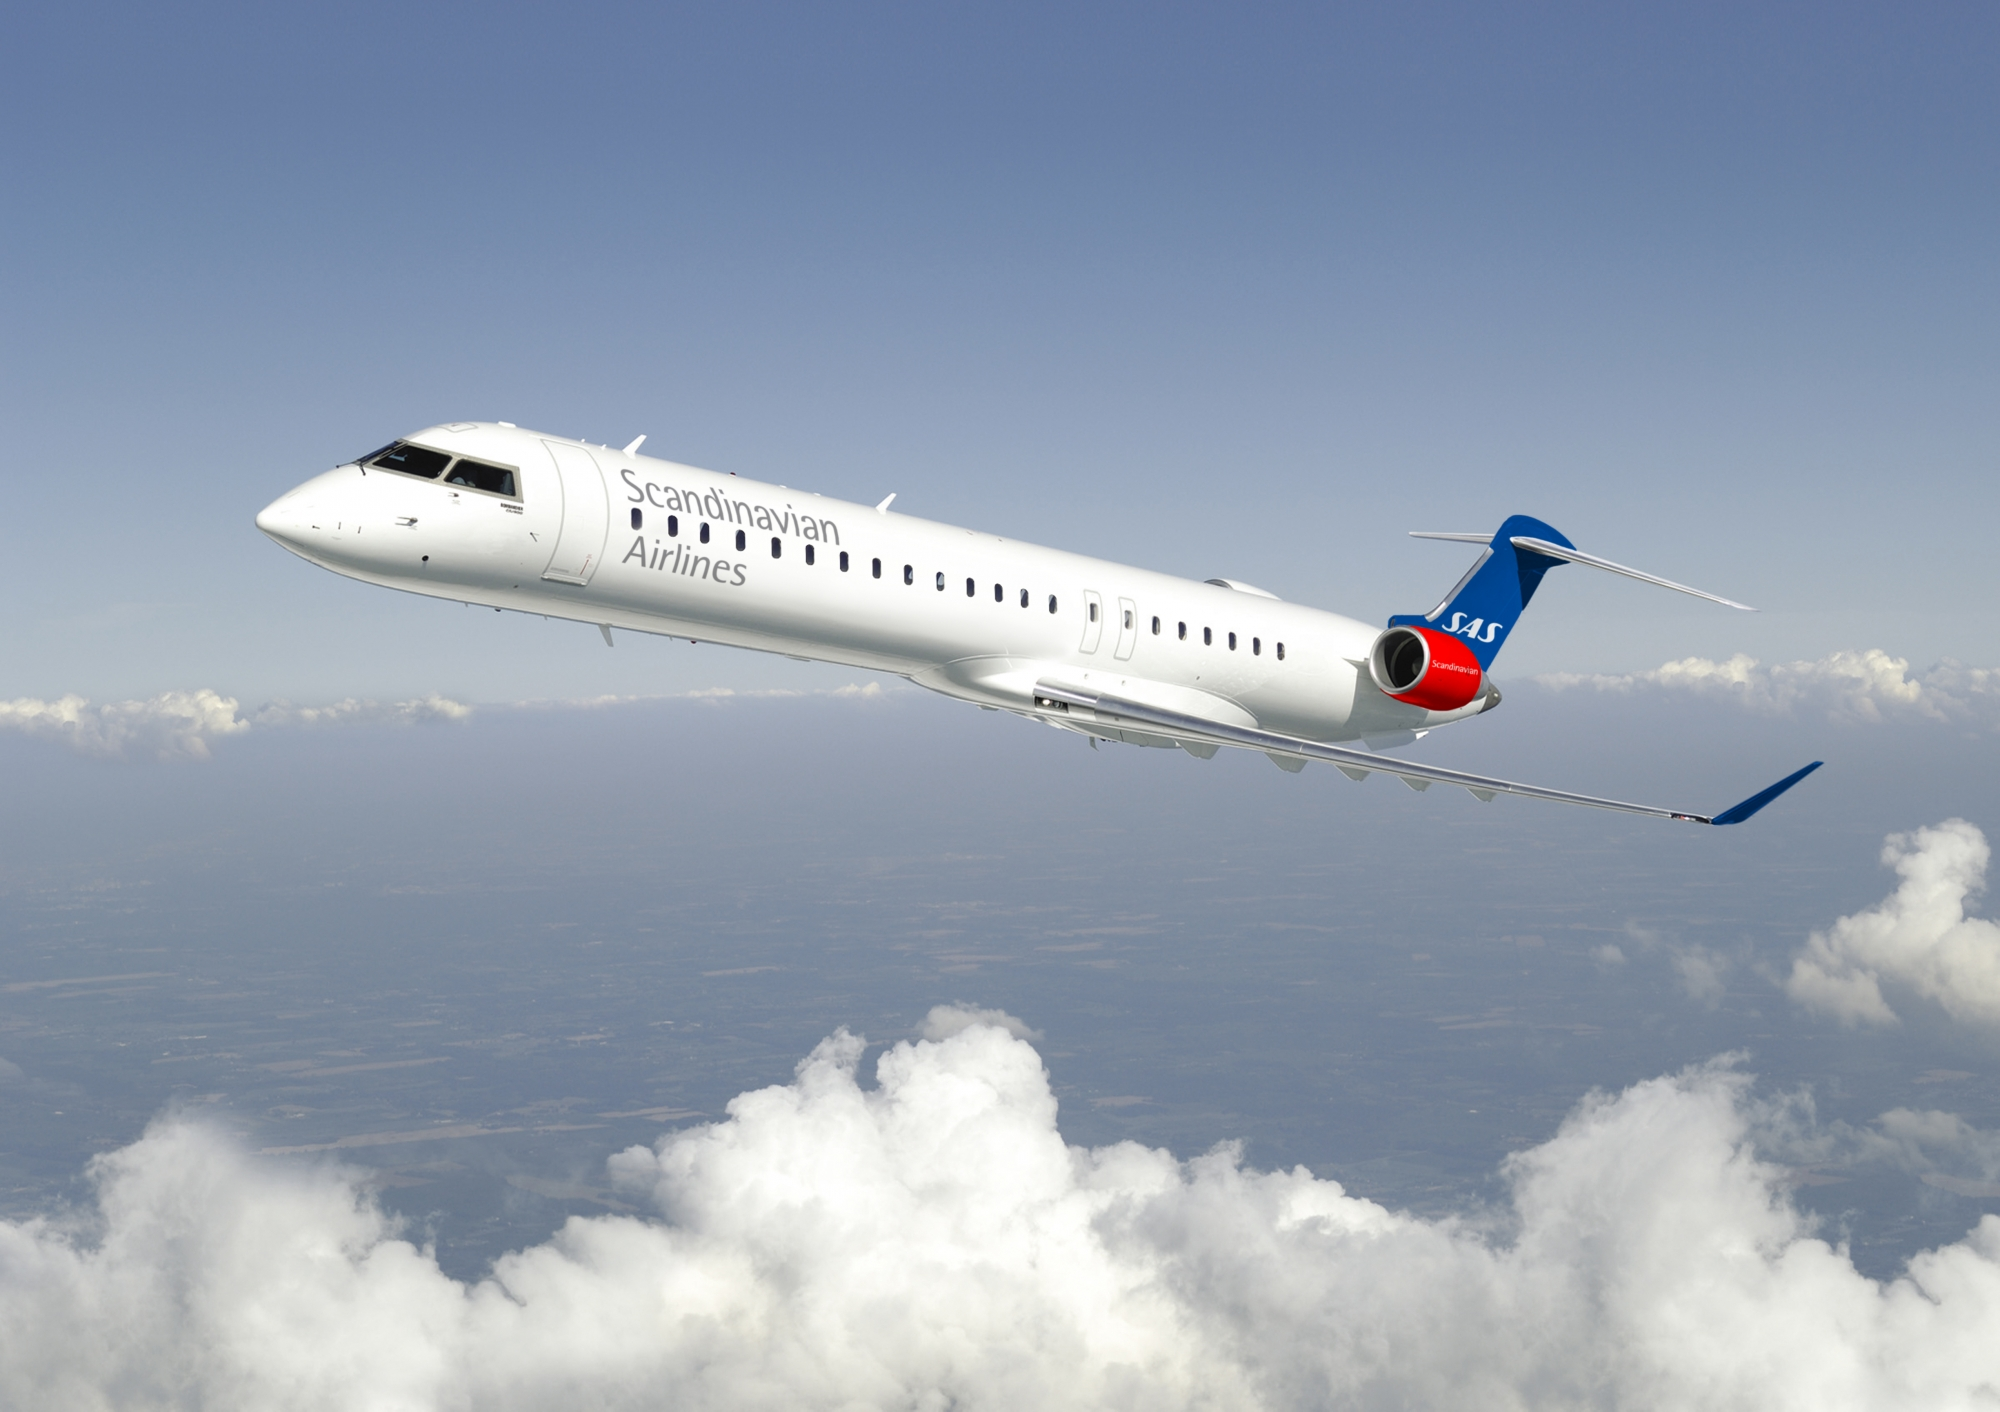 Bombardier And Cityjet Finalize Purchase Agreement For Up To 10